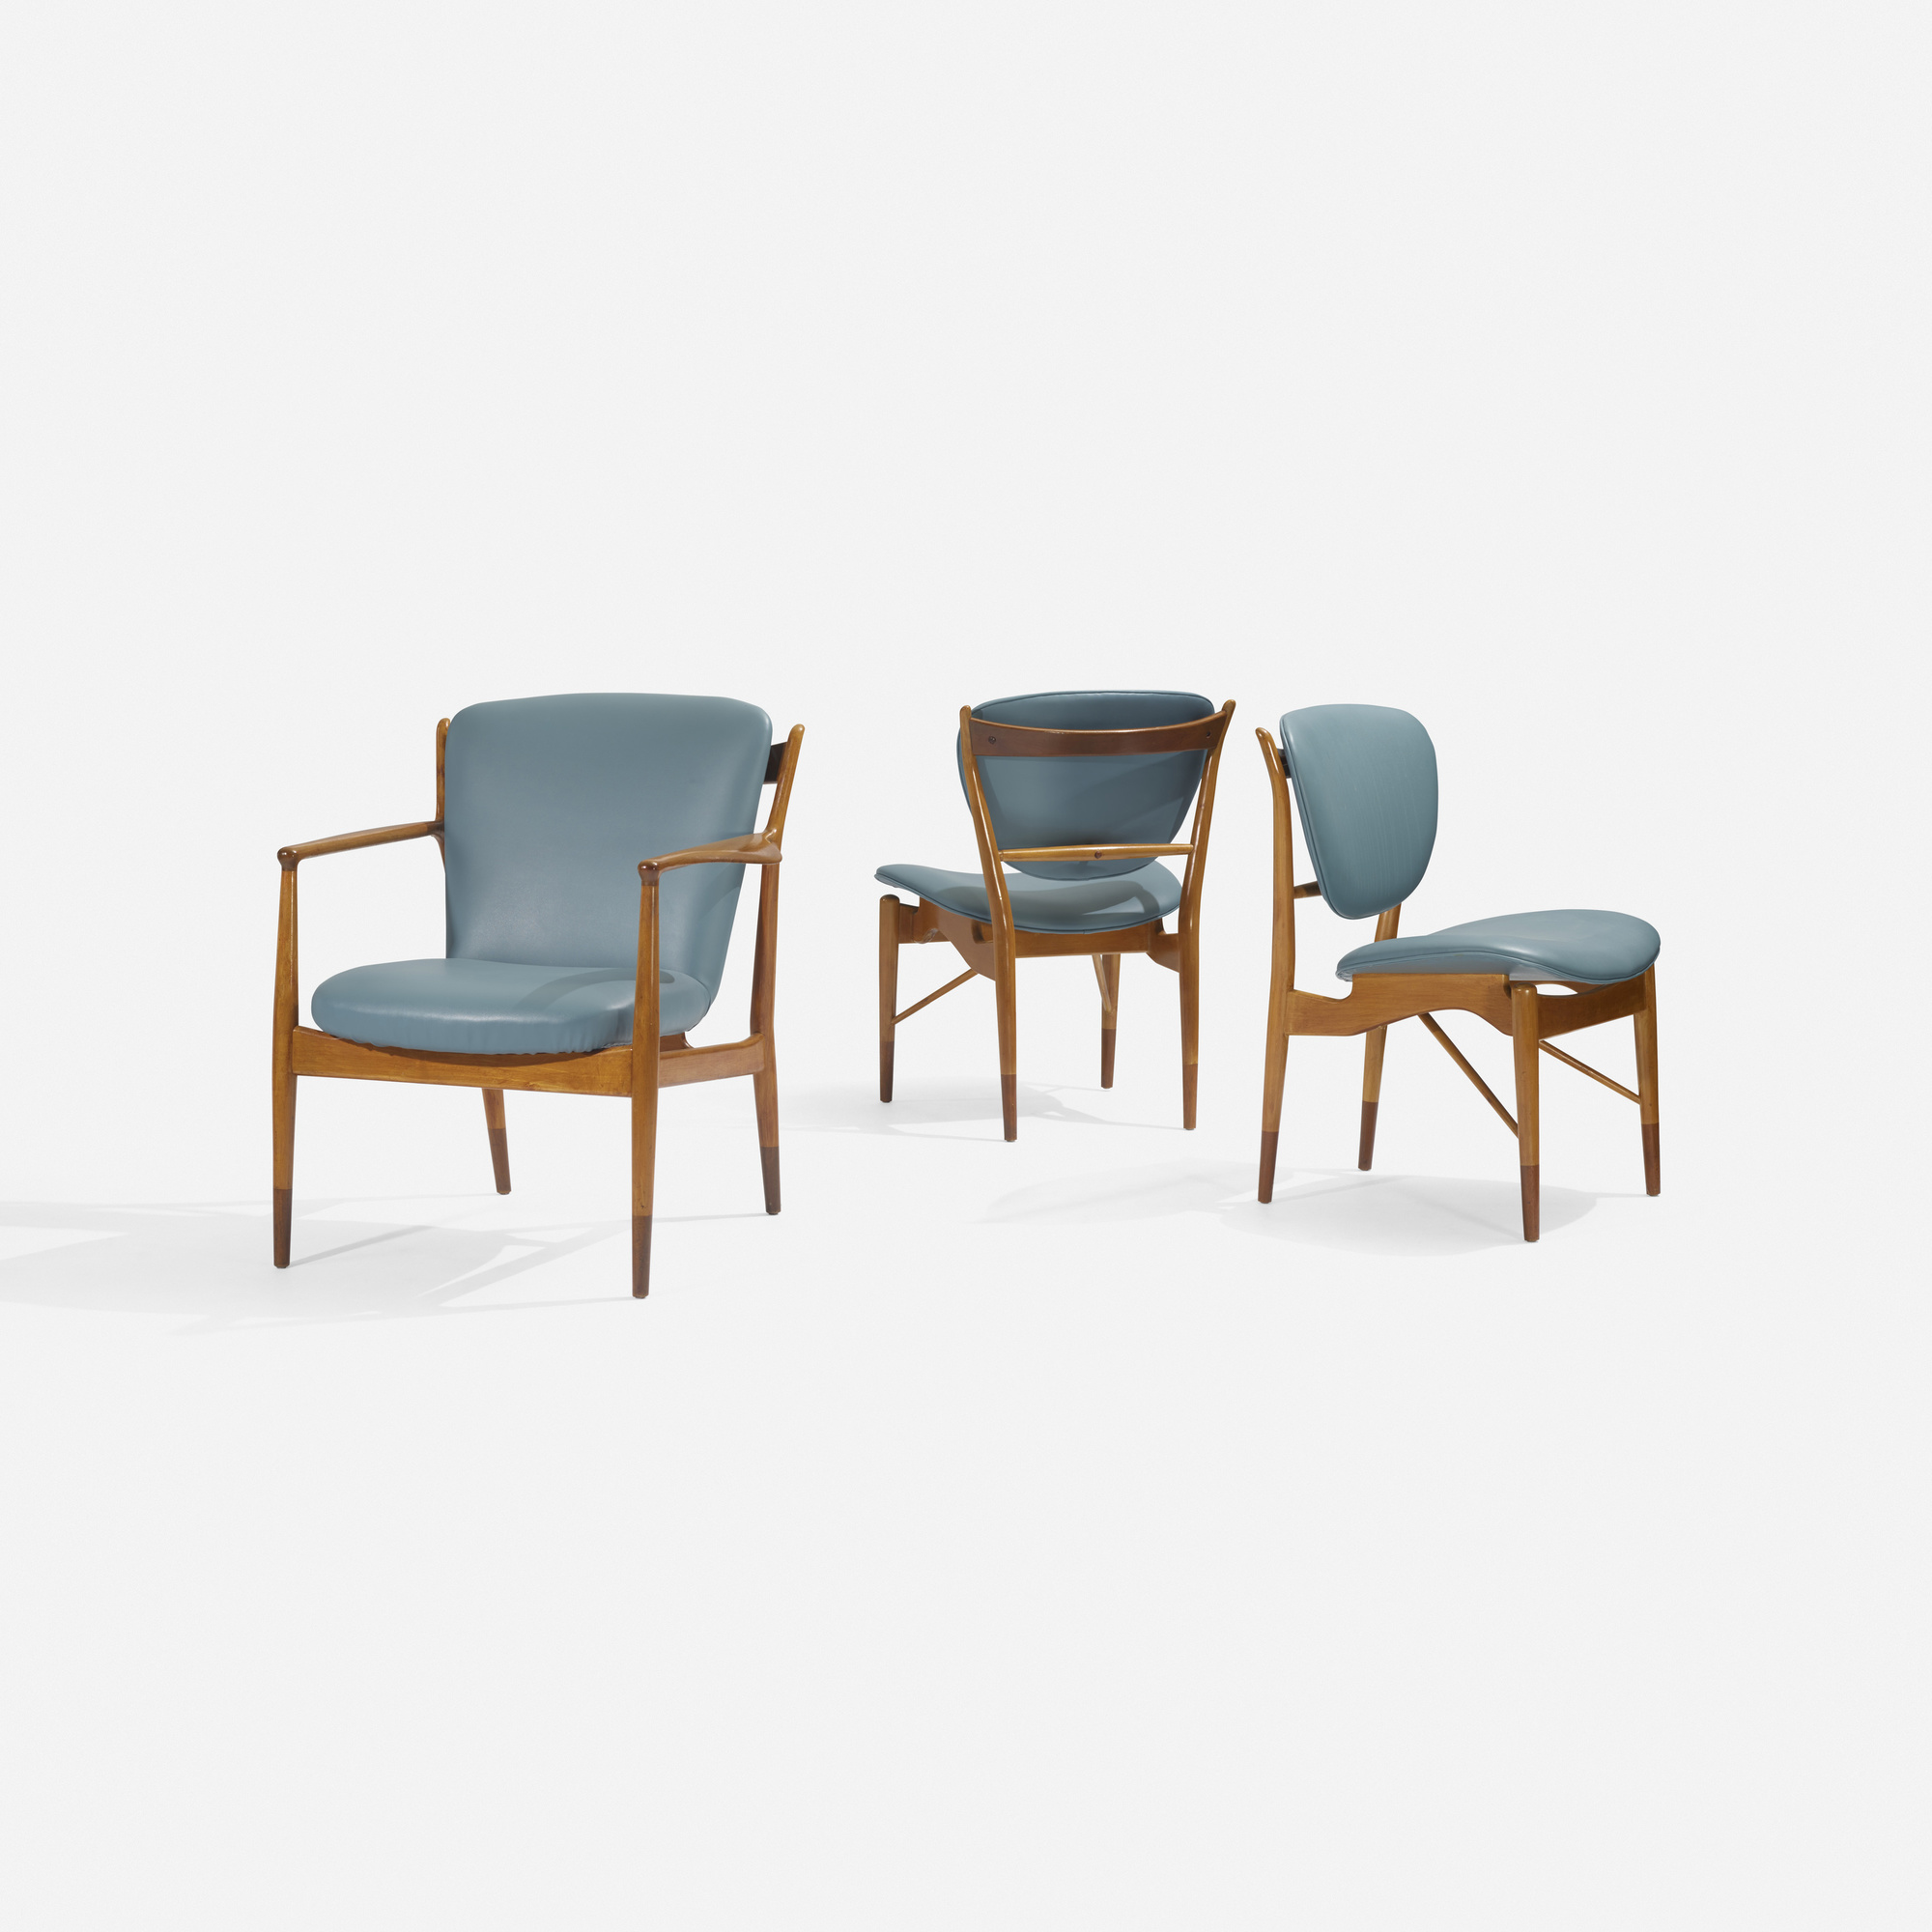 133: Finn Juhl / set of three chairs (2 of 3)